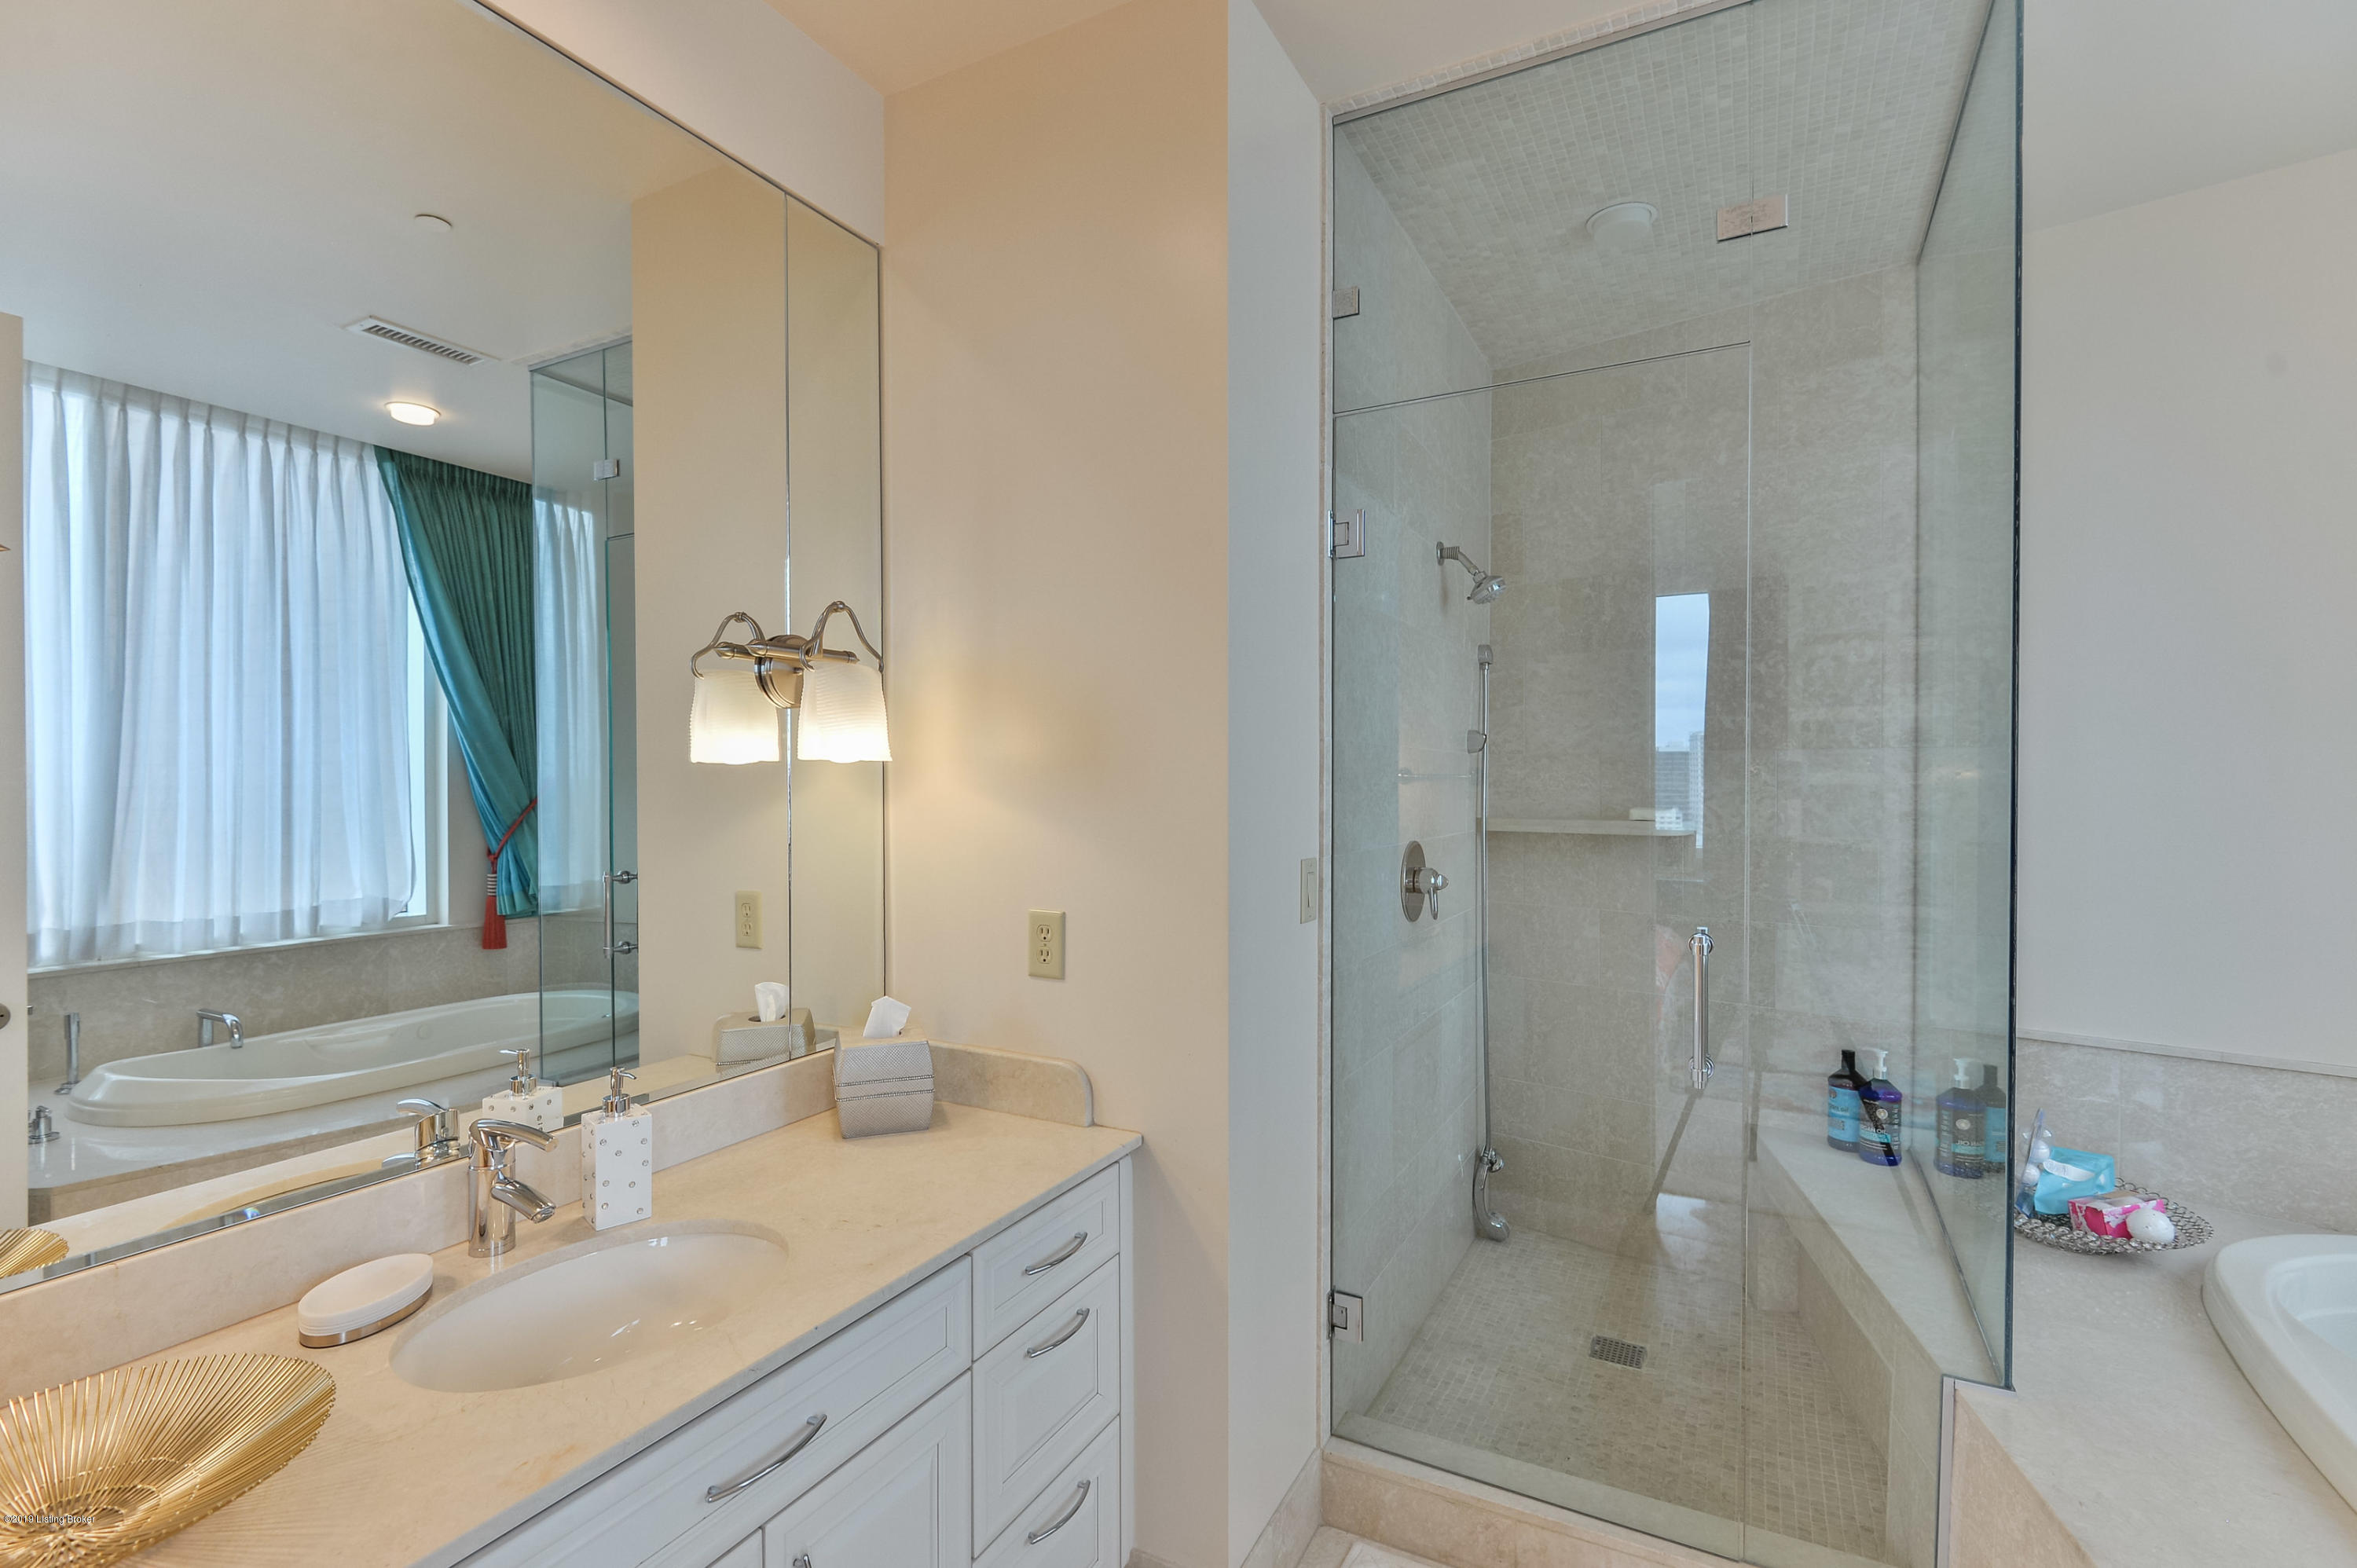 222 E Witherspoon St, Apt 2000